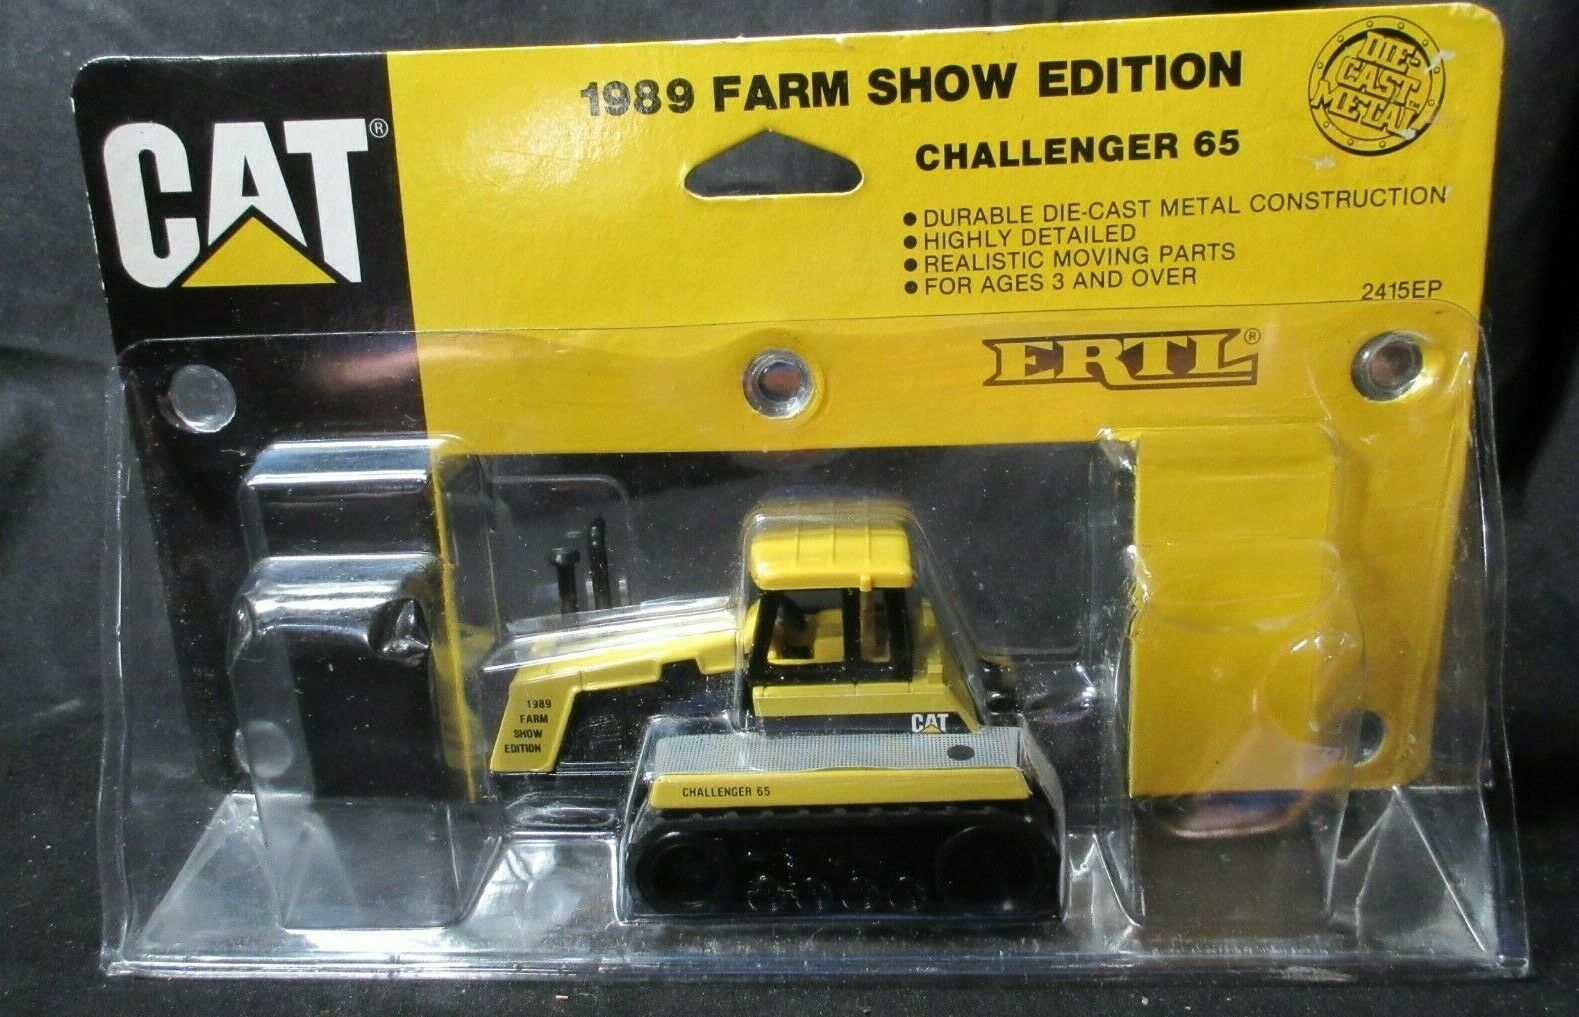 Caterpillar 65 Challenger1989 Farm Show Edition By Ertl 1/64th Scale 2415EP NIP